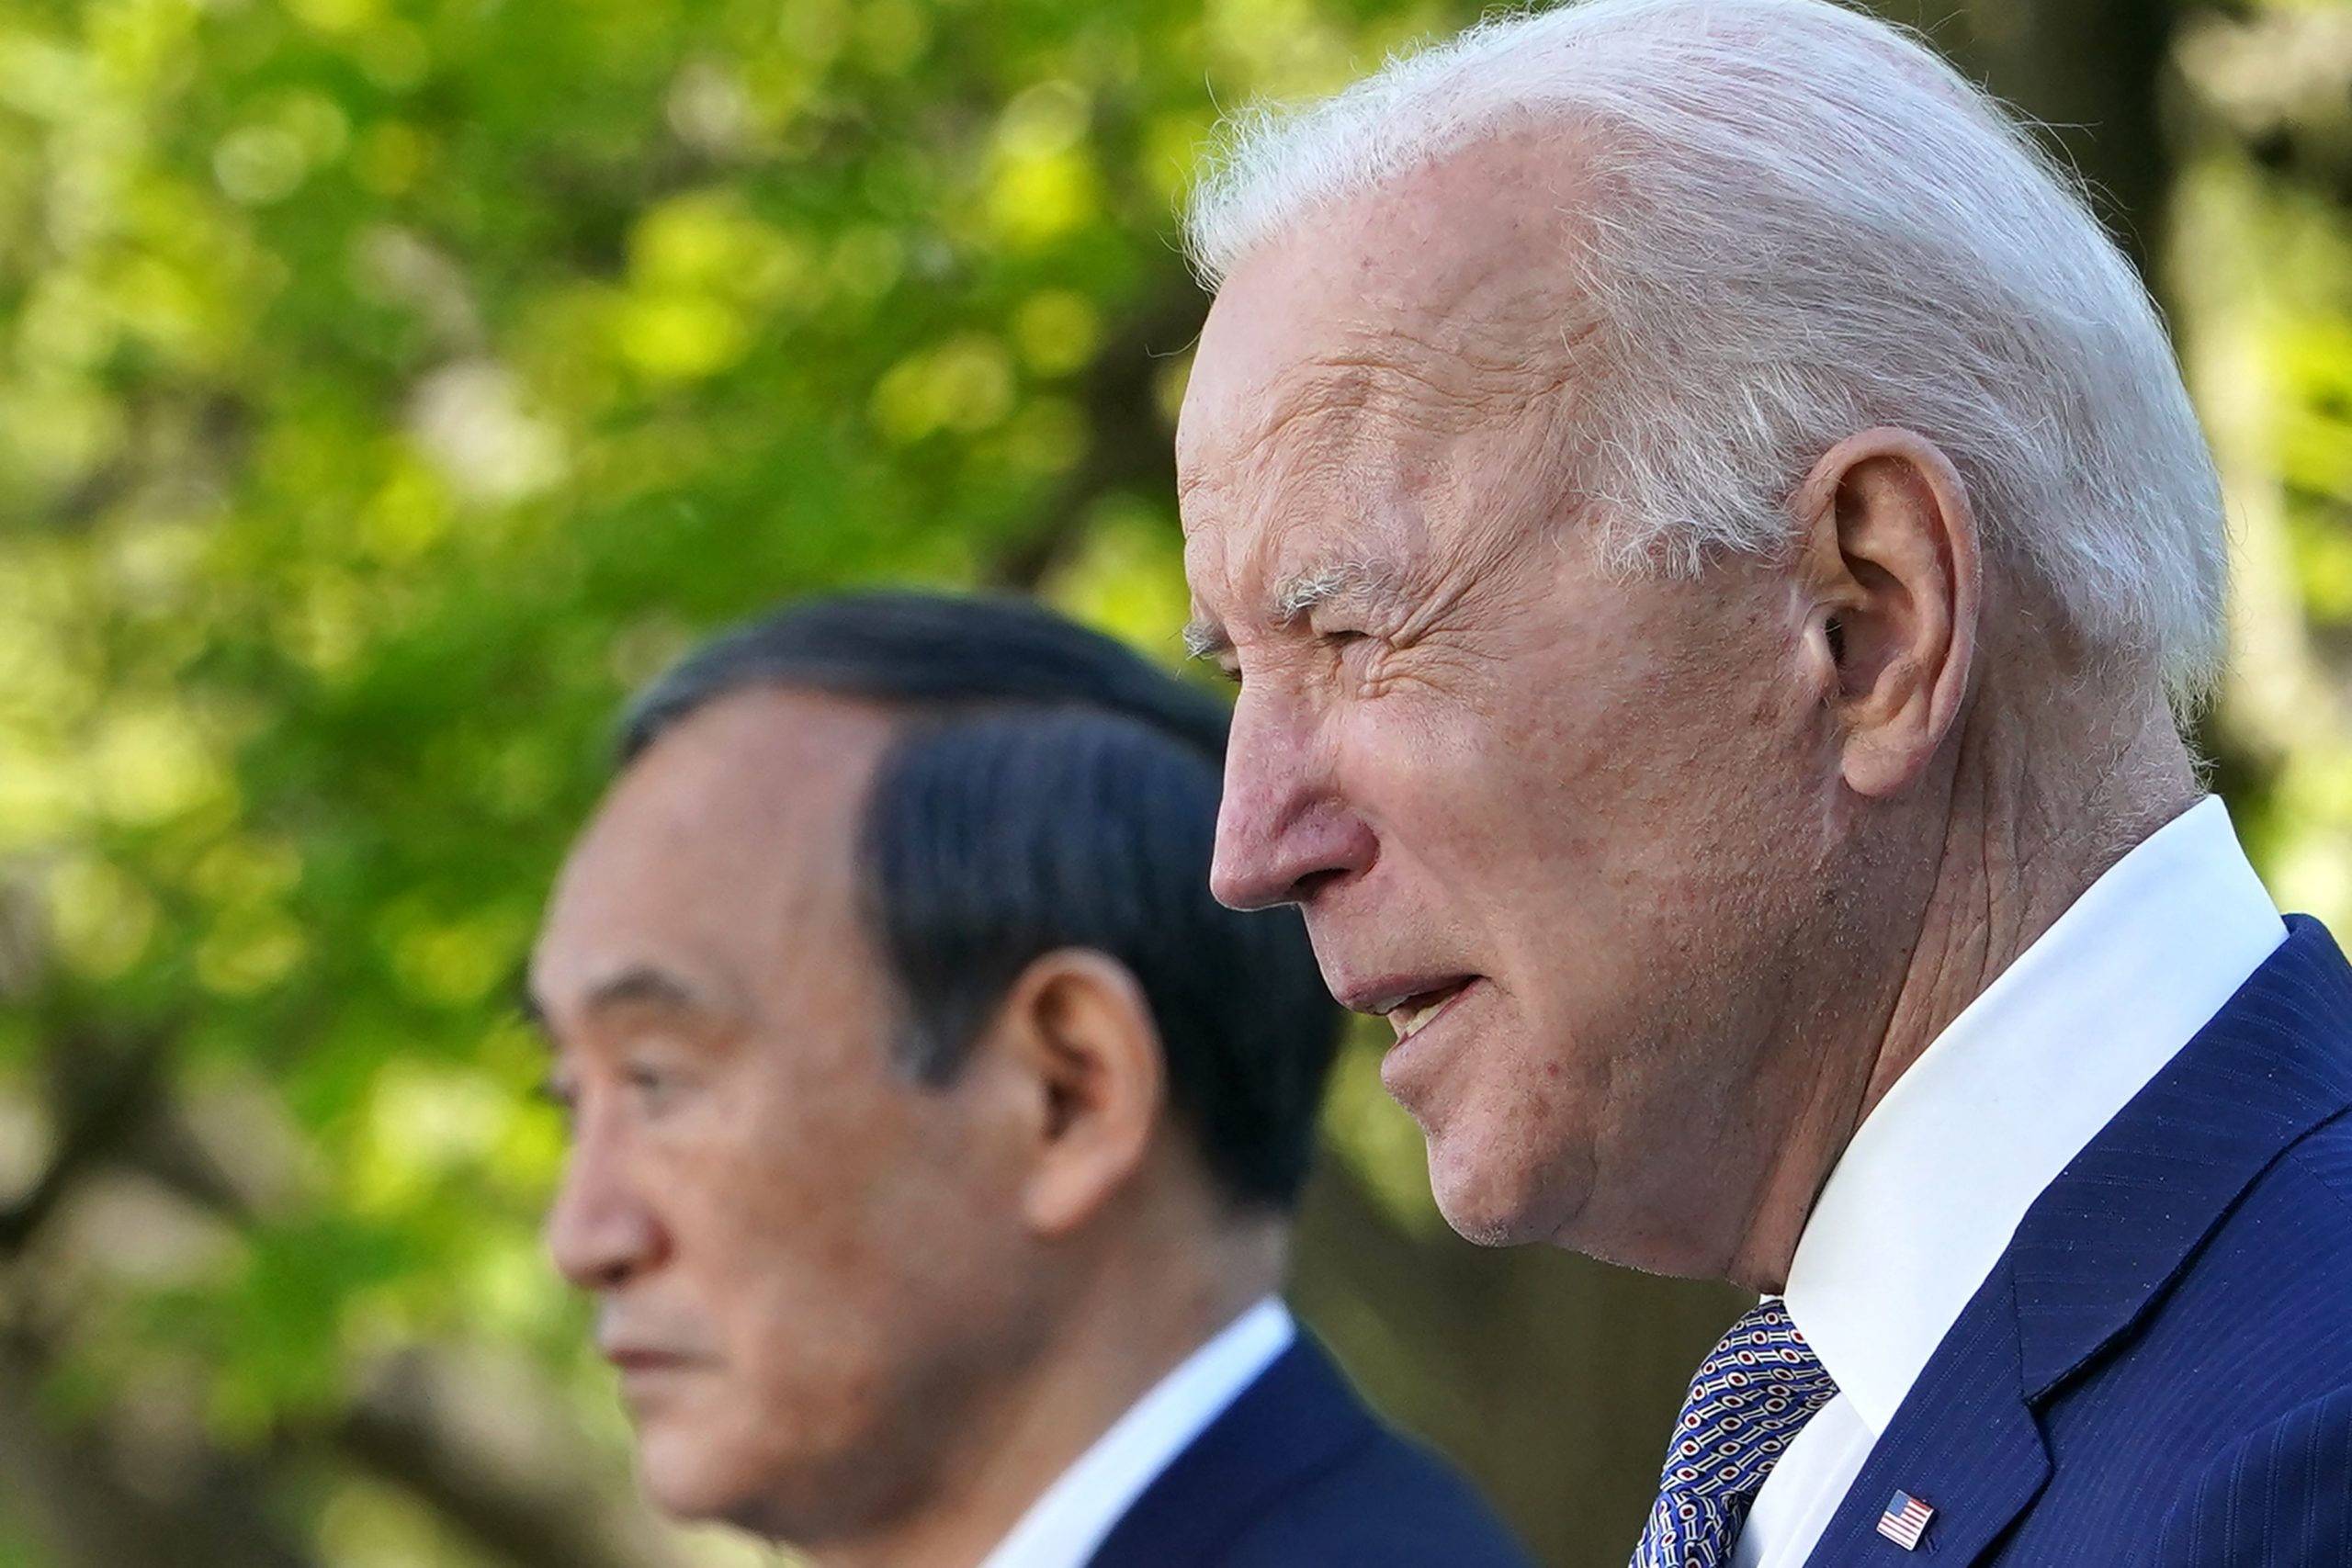 US President Joe Biden and Japan's Prime Minister Yoshihide Suga take part in a joint press conference in the Rose Garden of the White House in Washington, DC on April 16, 2021. (Photo by MANDEL NGAN/AFP via Getty Images)